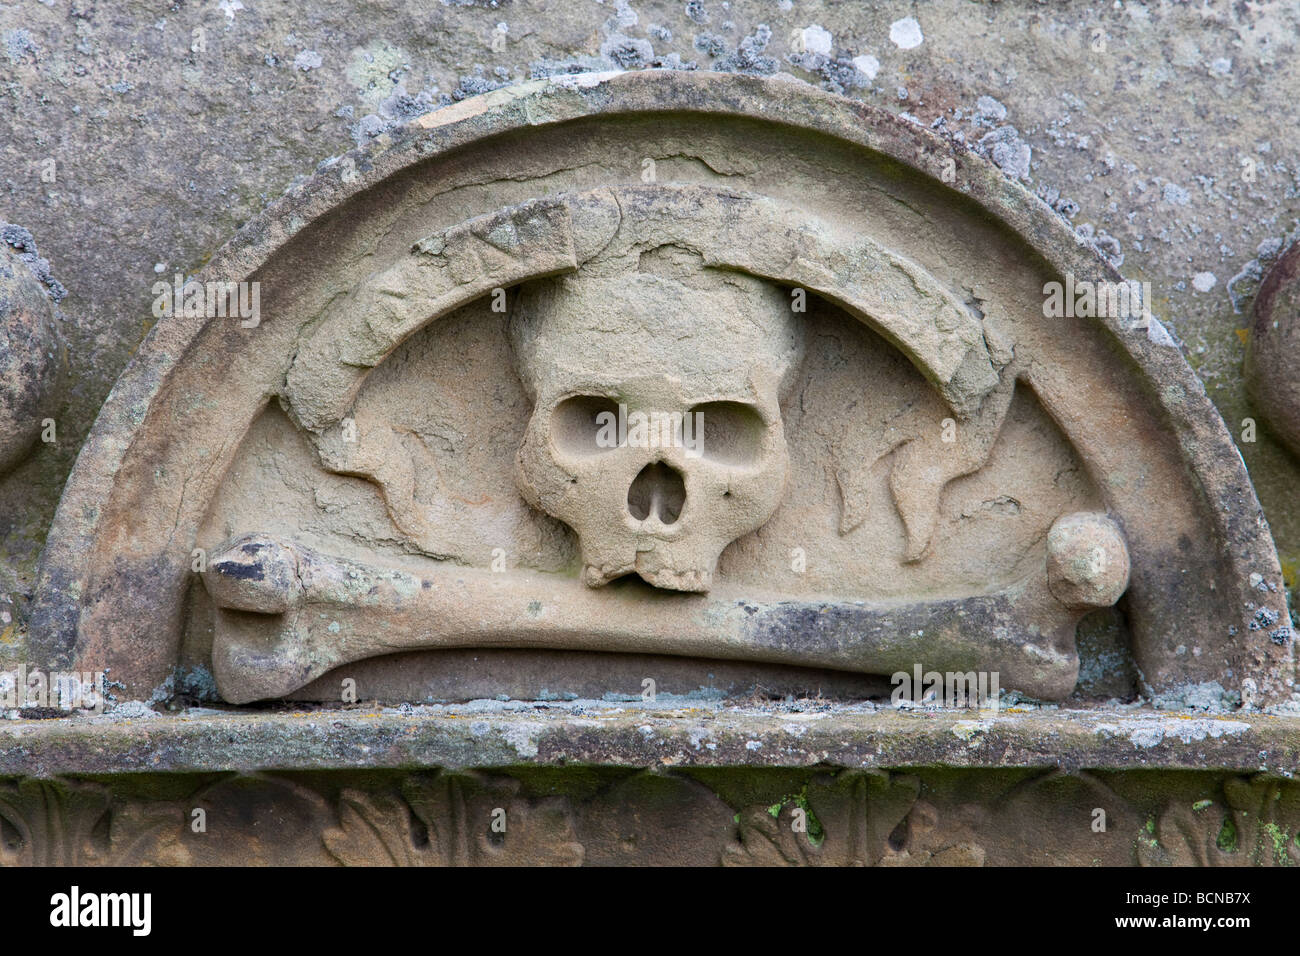 Skull And Bone Carving On Old Gravestone Stock Photo Alamy